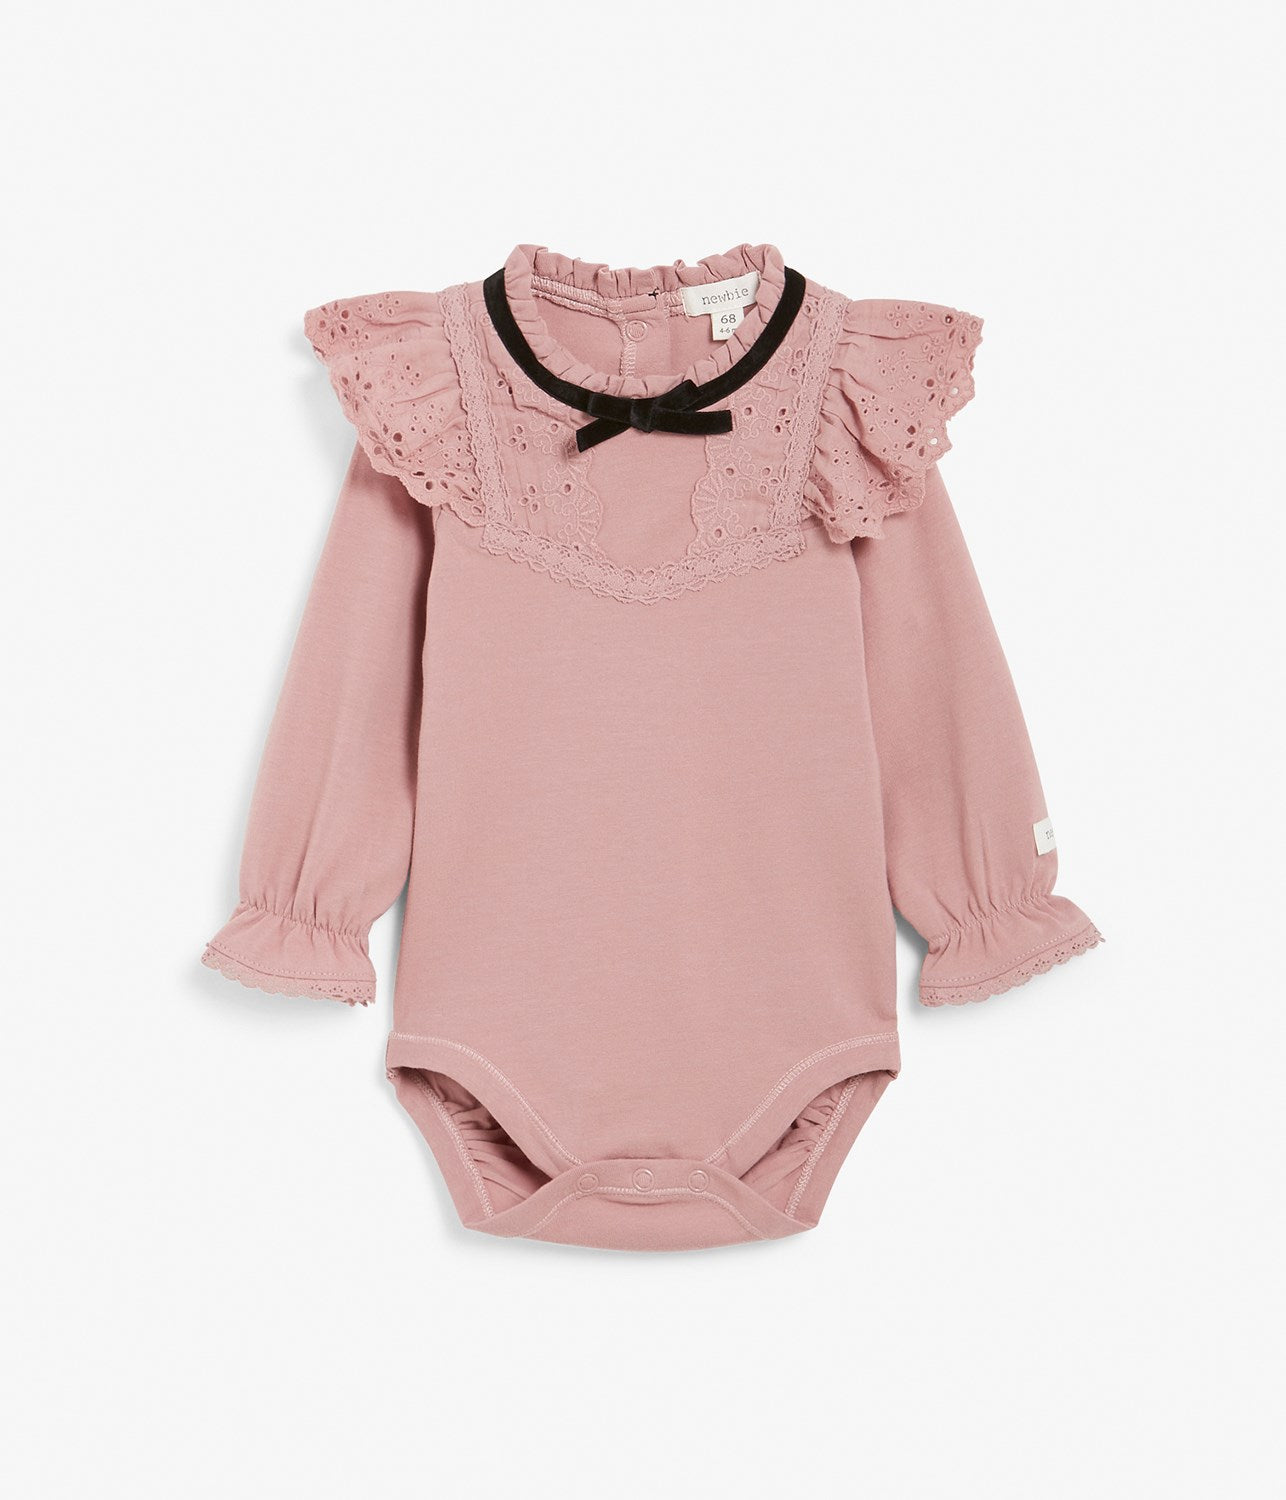 Baby pink body with lace frills and neck bow